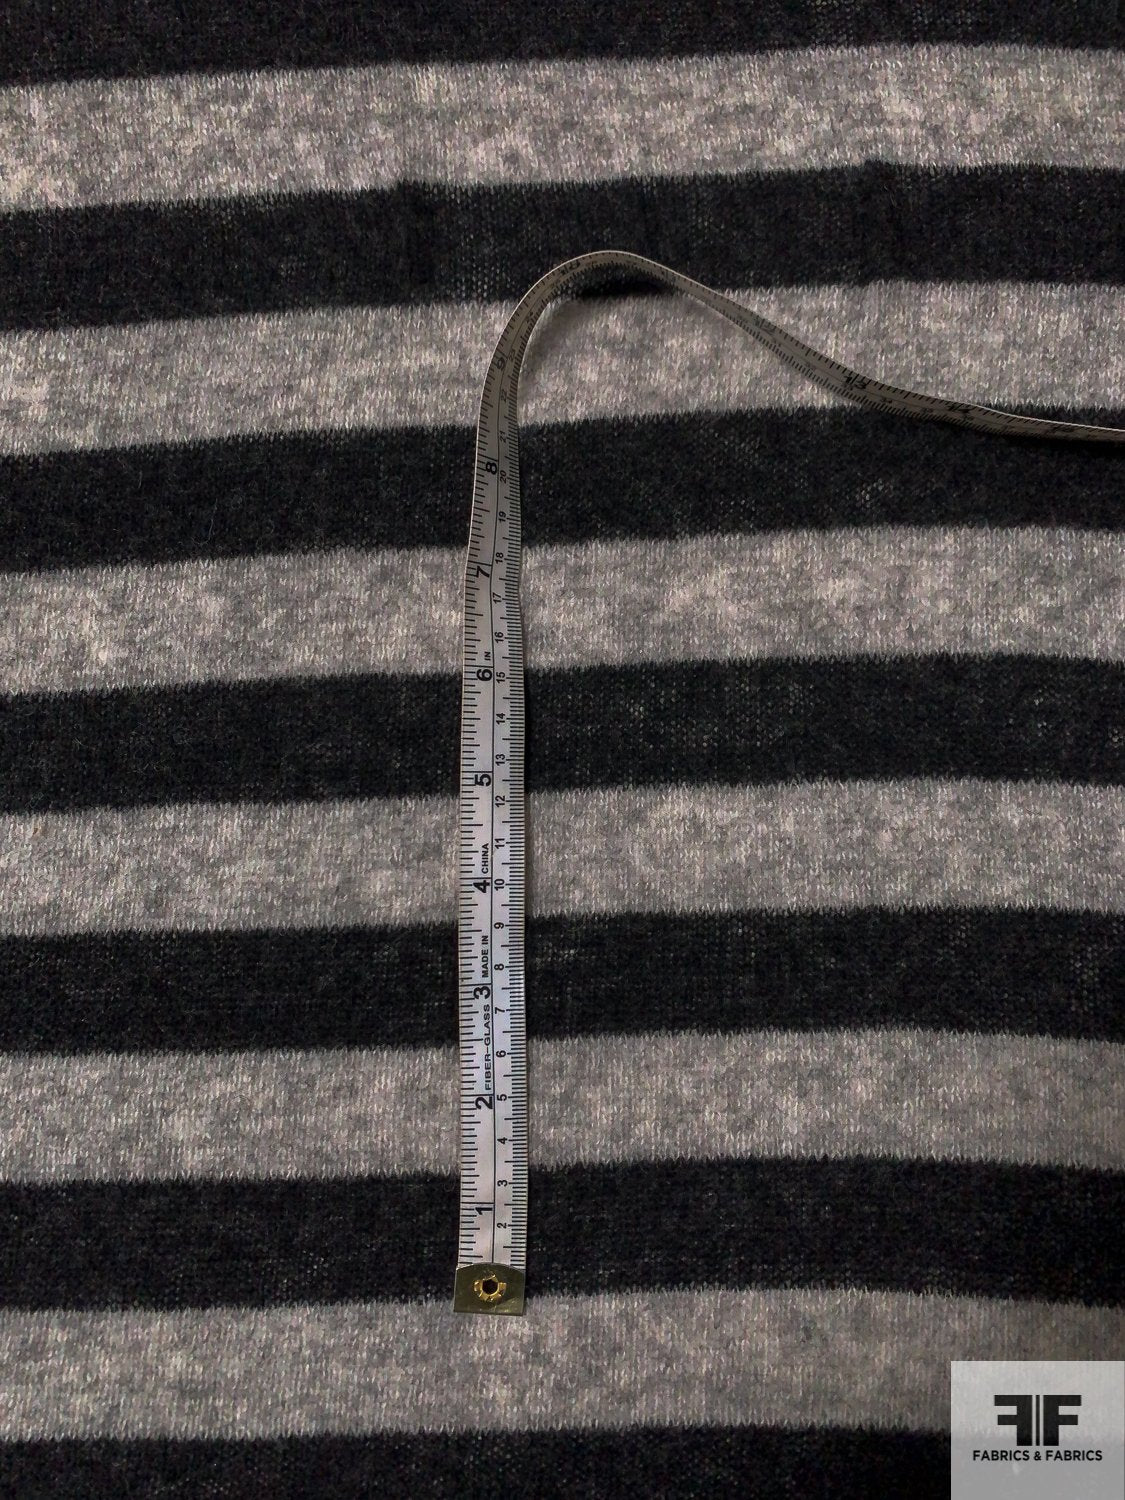 Italian Horizontal Striped Lightweight Wool Sweater Knit - Heather Black / Heather Grey